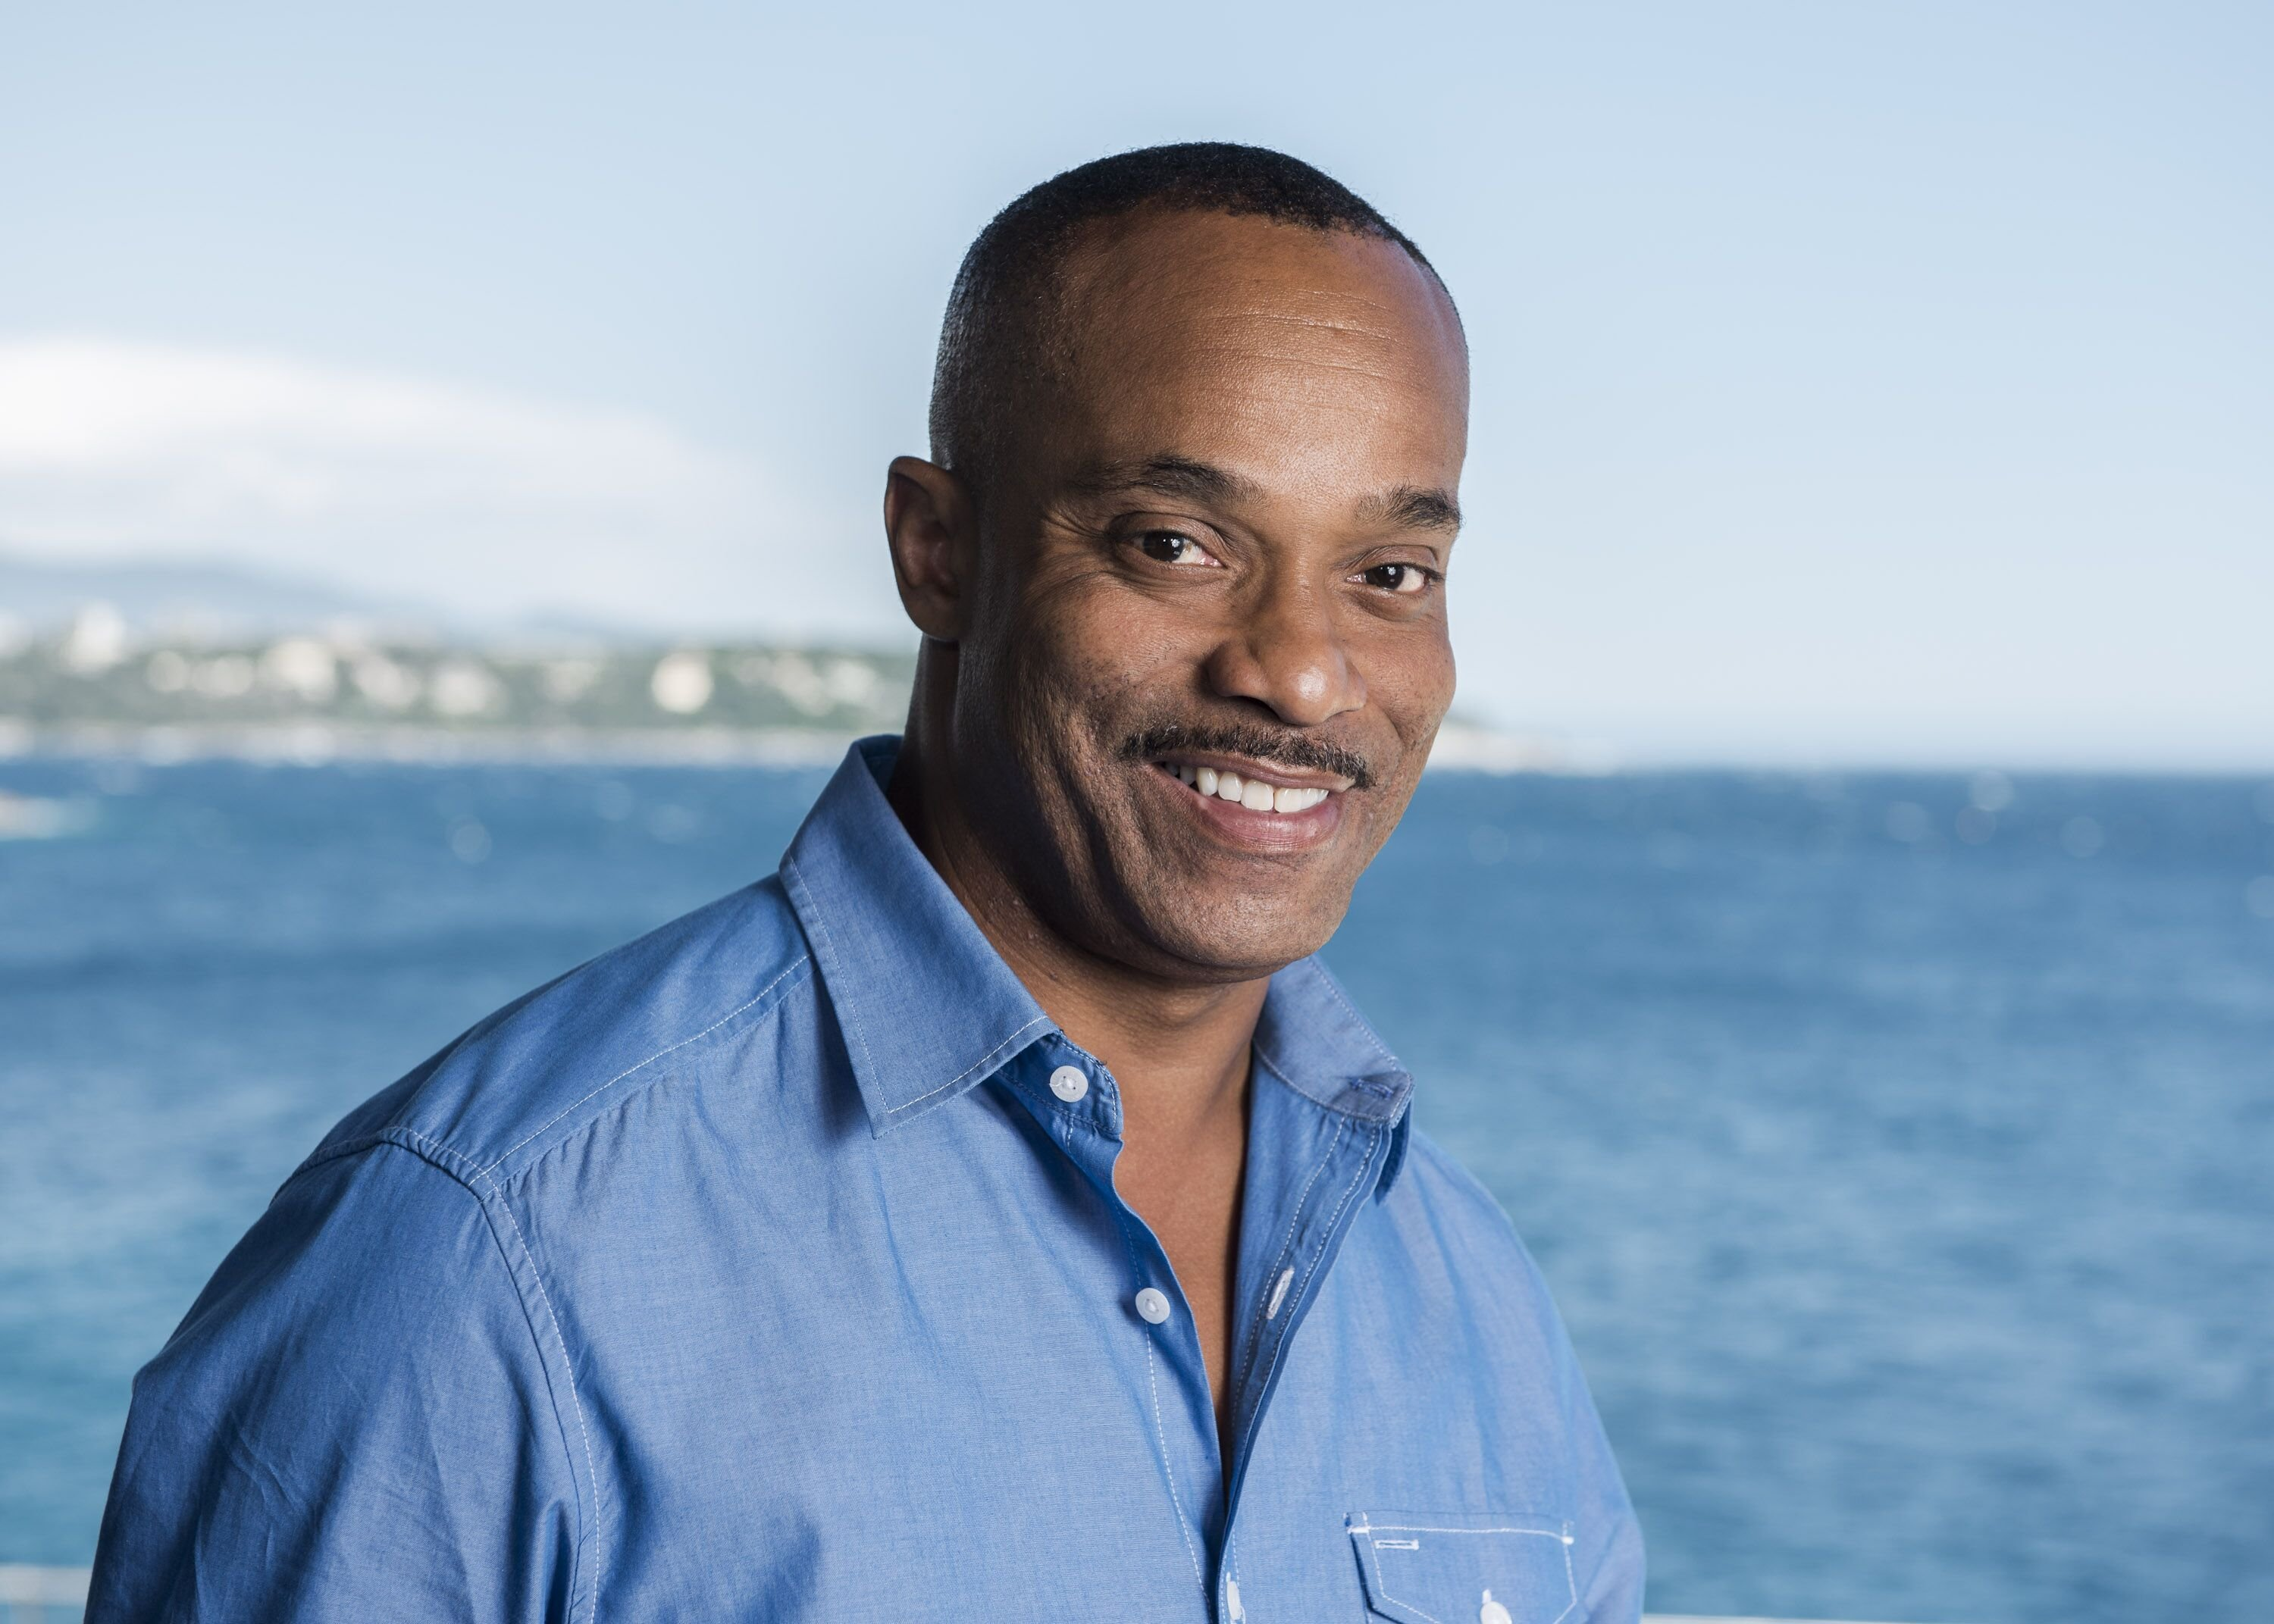 Actor Rocky Carroll poses for a portrait session during the 52nd Monte Carlo TV Festival on June 12, 2012 in Monaco, Monaco | Photo: Getty Images